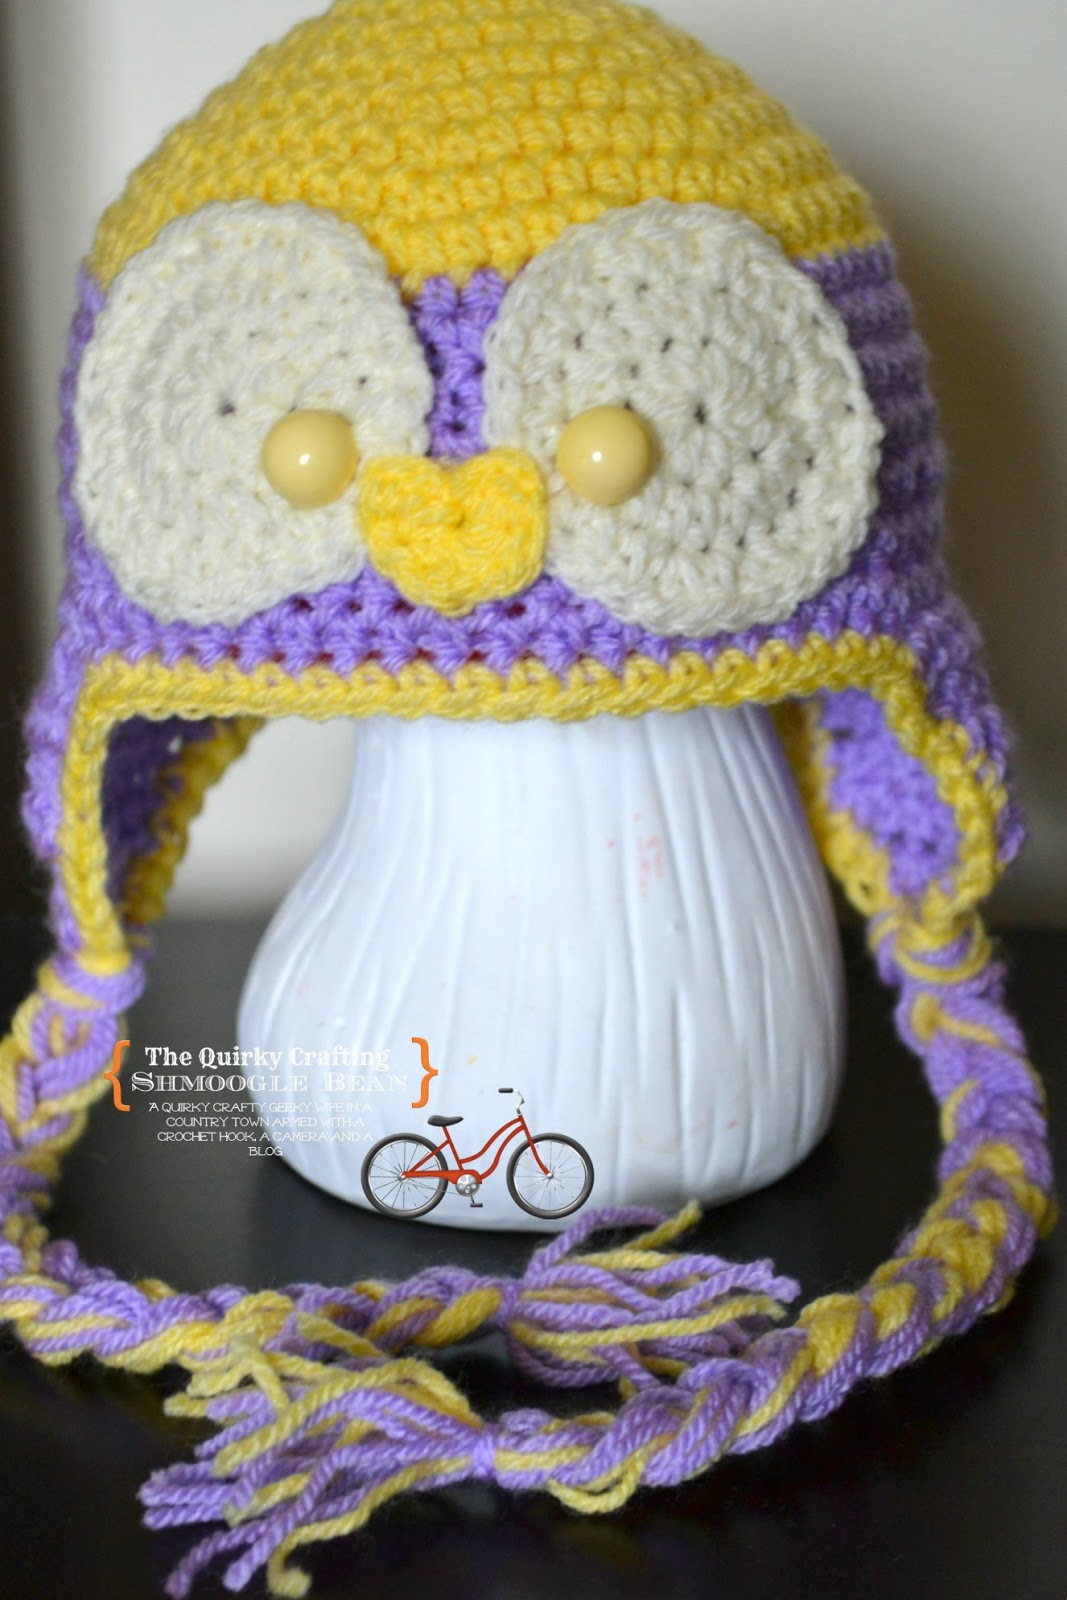 Crochet Baby Hat Patterns 6 Months : The Quirky Crafting Shmoogle Bean: Baby Bird Crochet Hat ...